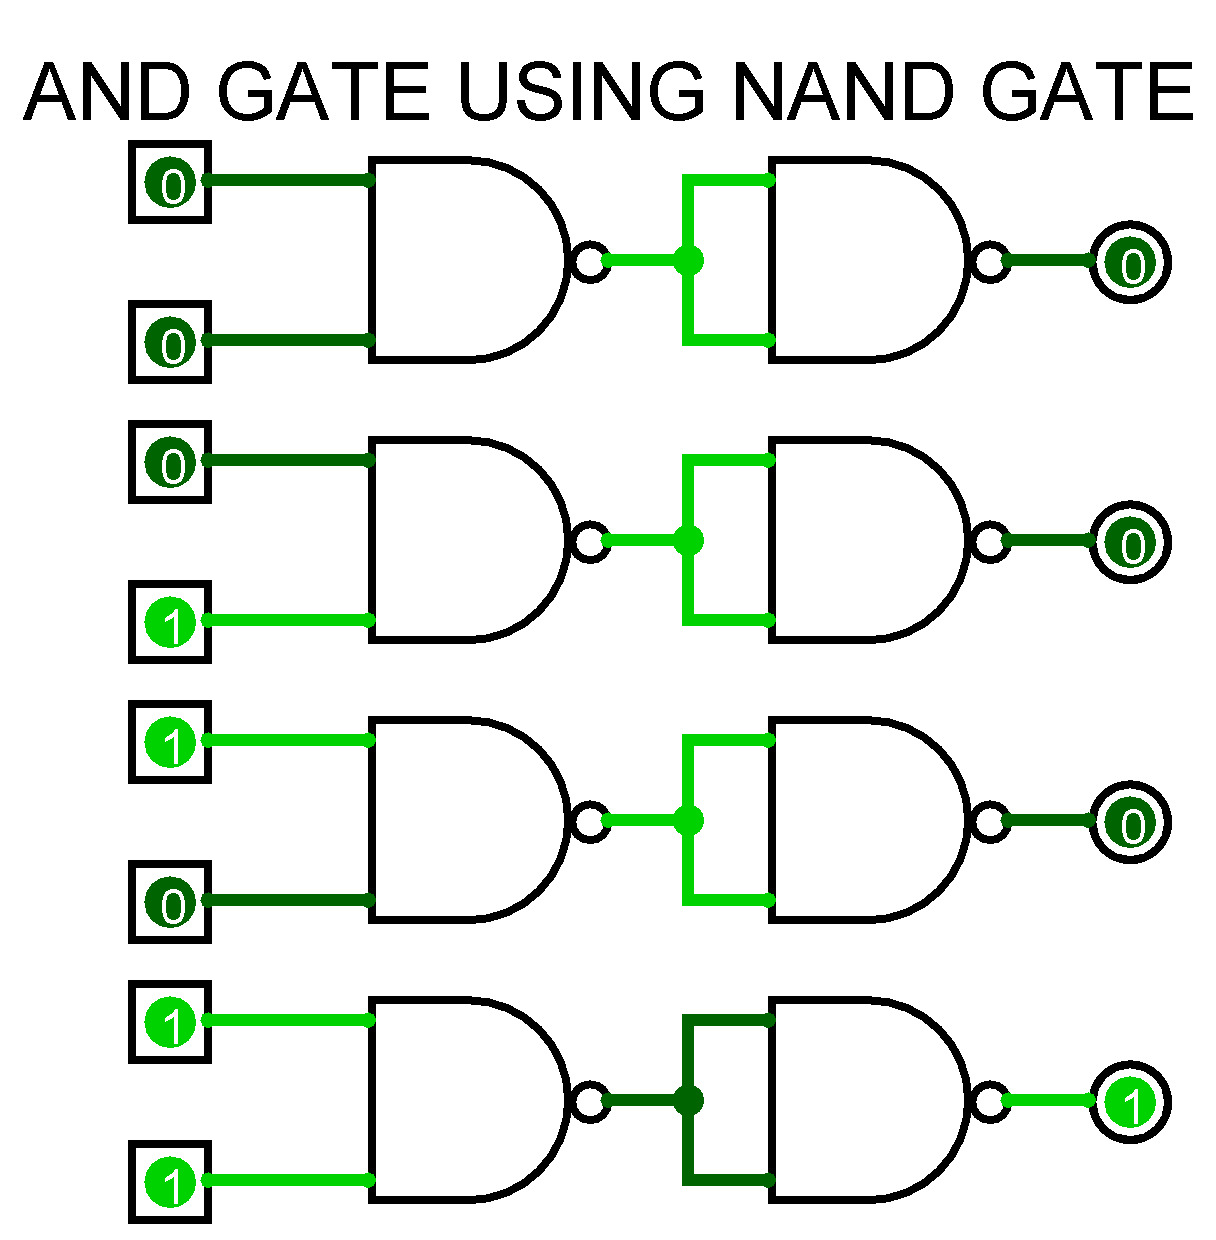 Logic Diagram Using Nand Gate Wiring Diagrams Of Jk Flip Flop To Study And Verify The Truth Table Gates Ahirlabs Master Slave D Full Adder